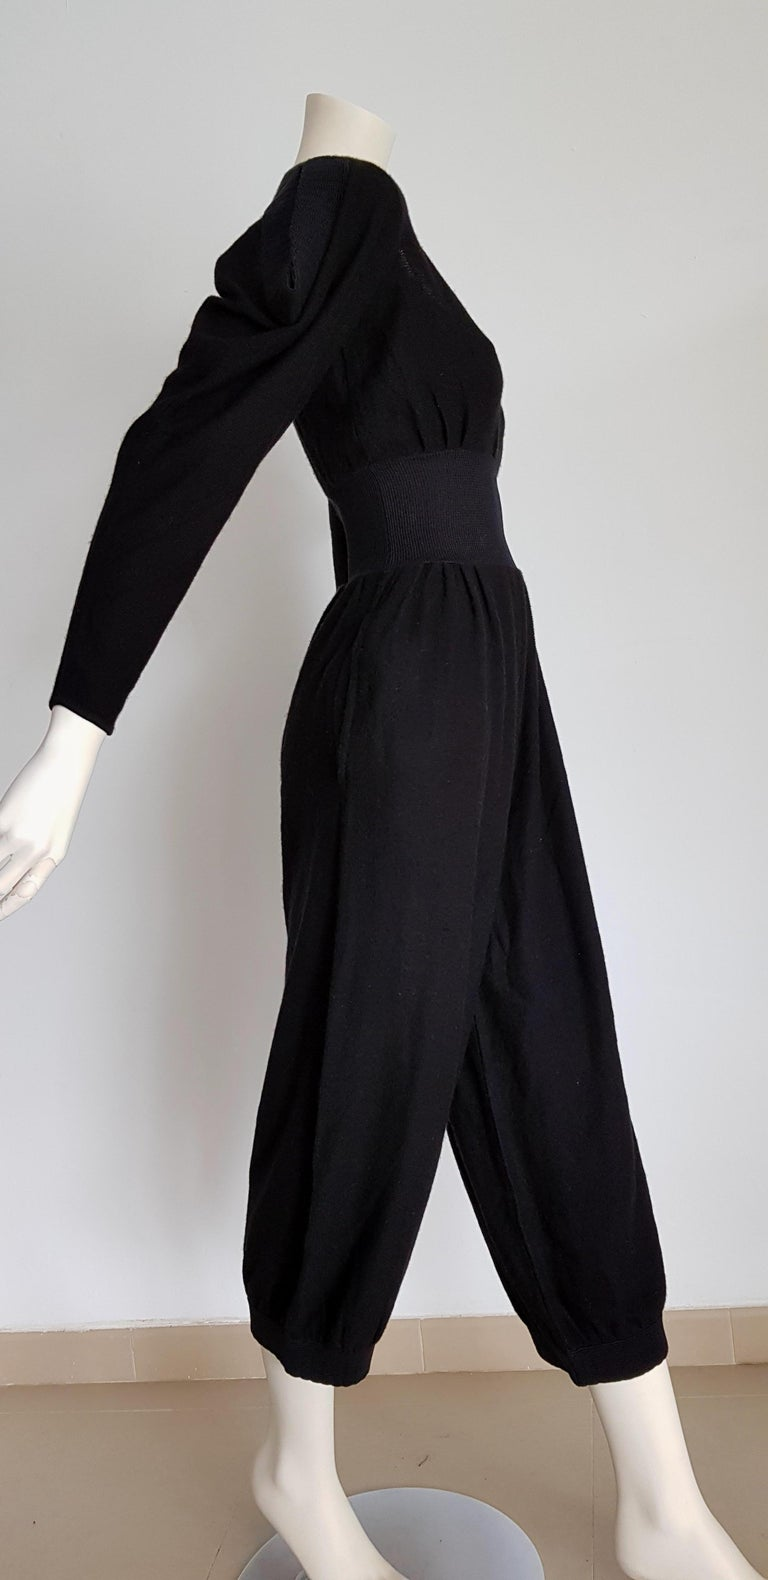 HERMES black cashmere and silk jumpsuit with elasticated waistband - Unworn, New.  SIZE: equivalent to about Small / Medium, please review approx measurements as follows in cm.  JUMPSUIT: lenght 126, chest underarm to underarm 47, bust circumference